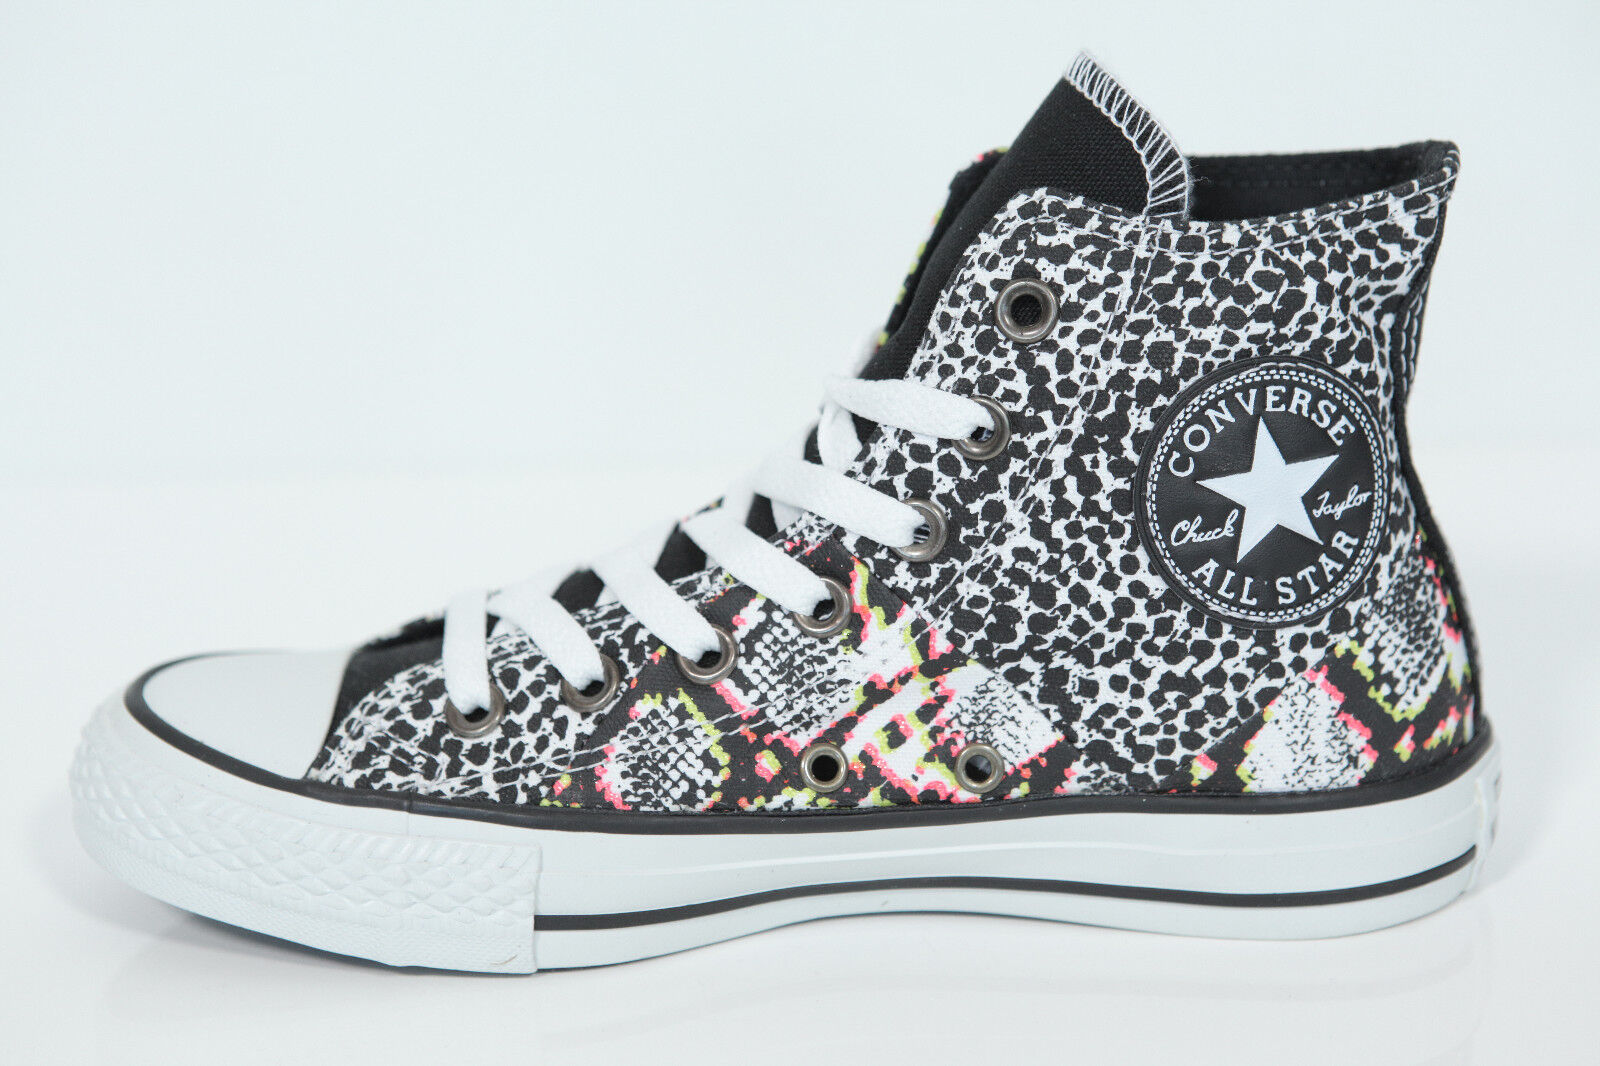 Nouveau All Star Converse Chuck Hi Turnchaussures Multi Panel 542491 C Taille 37 UK 4,5 chaussures